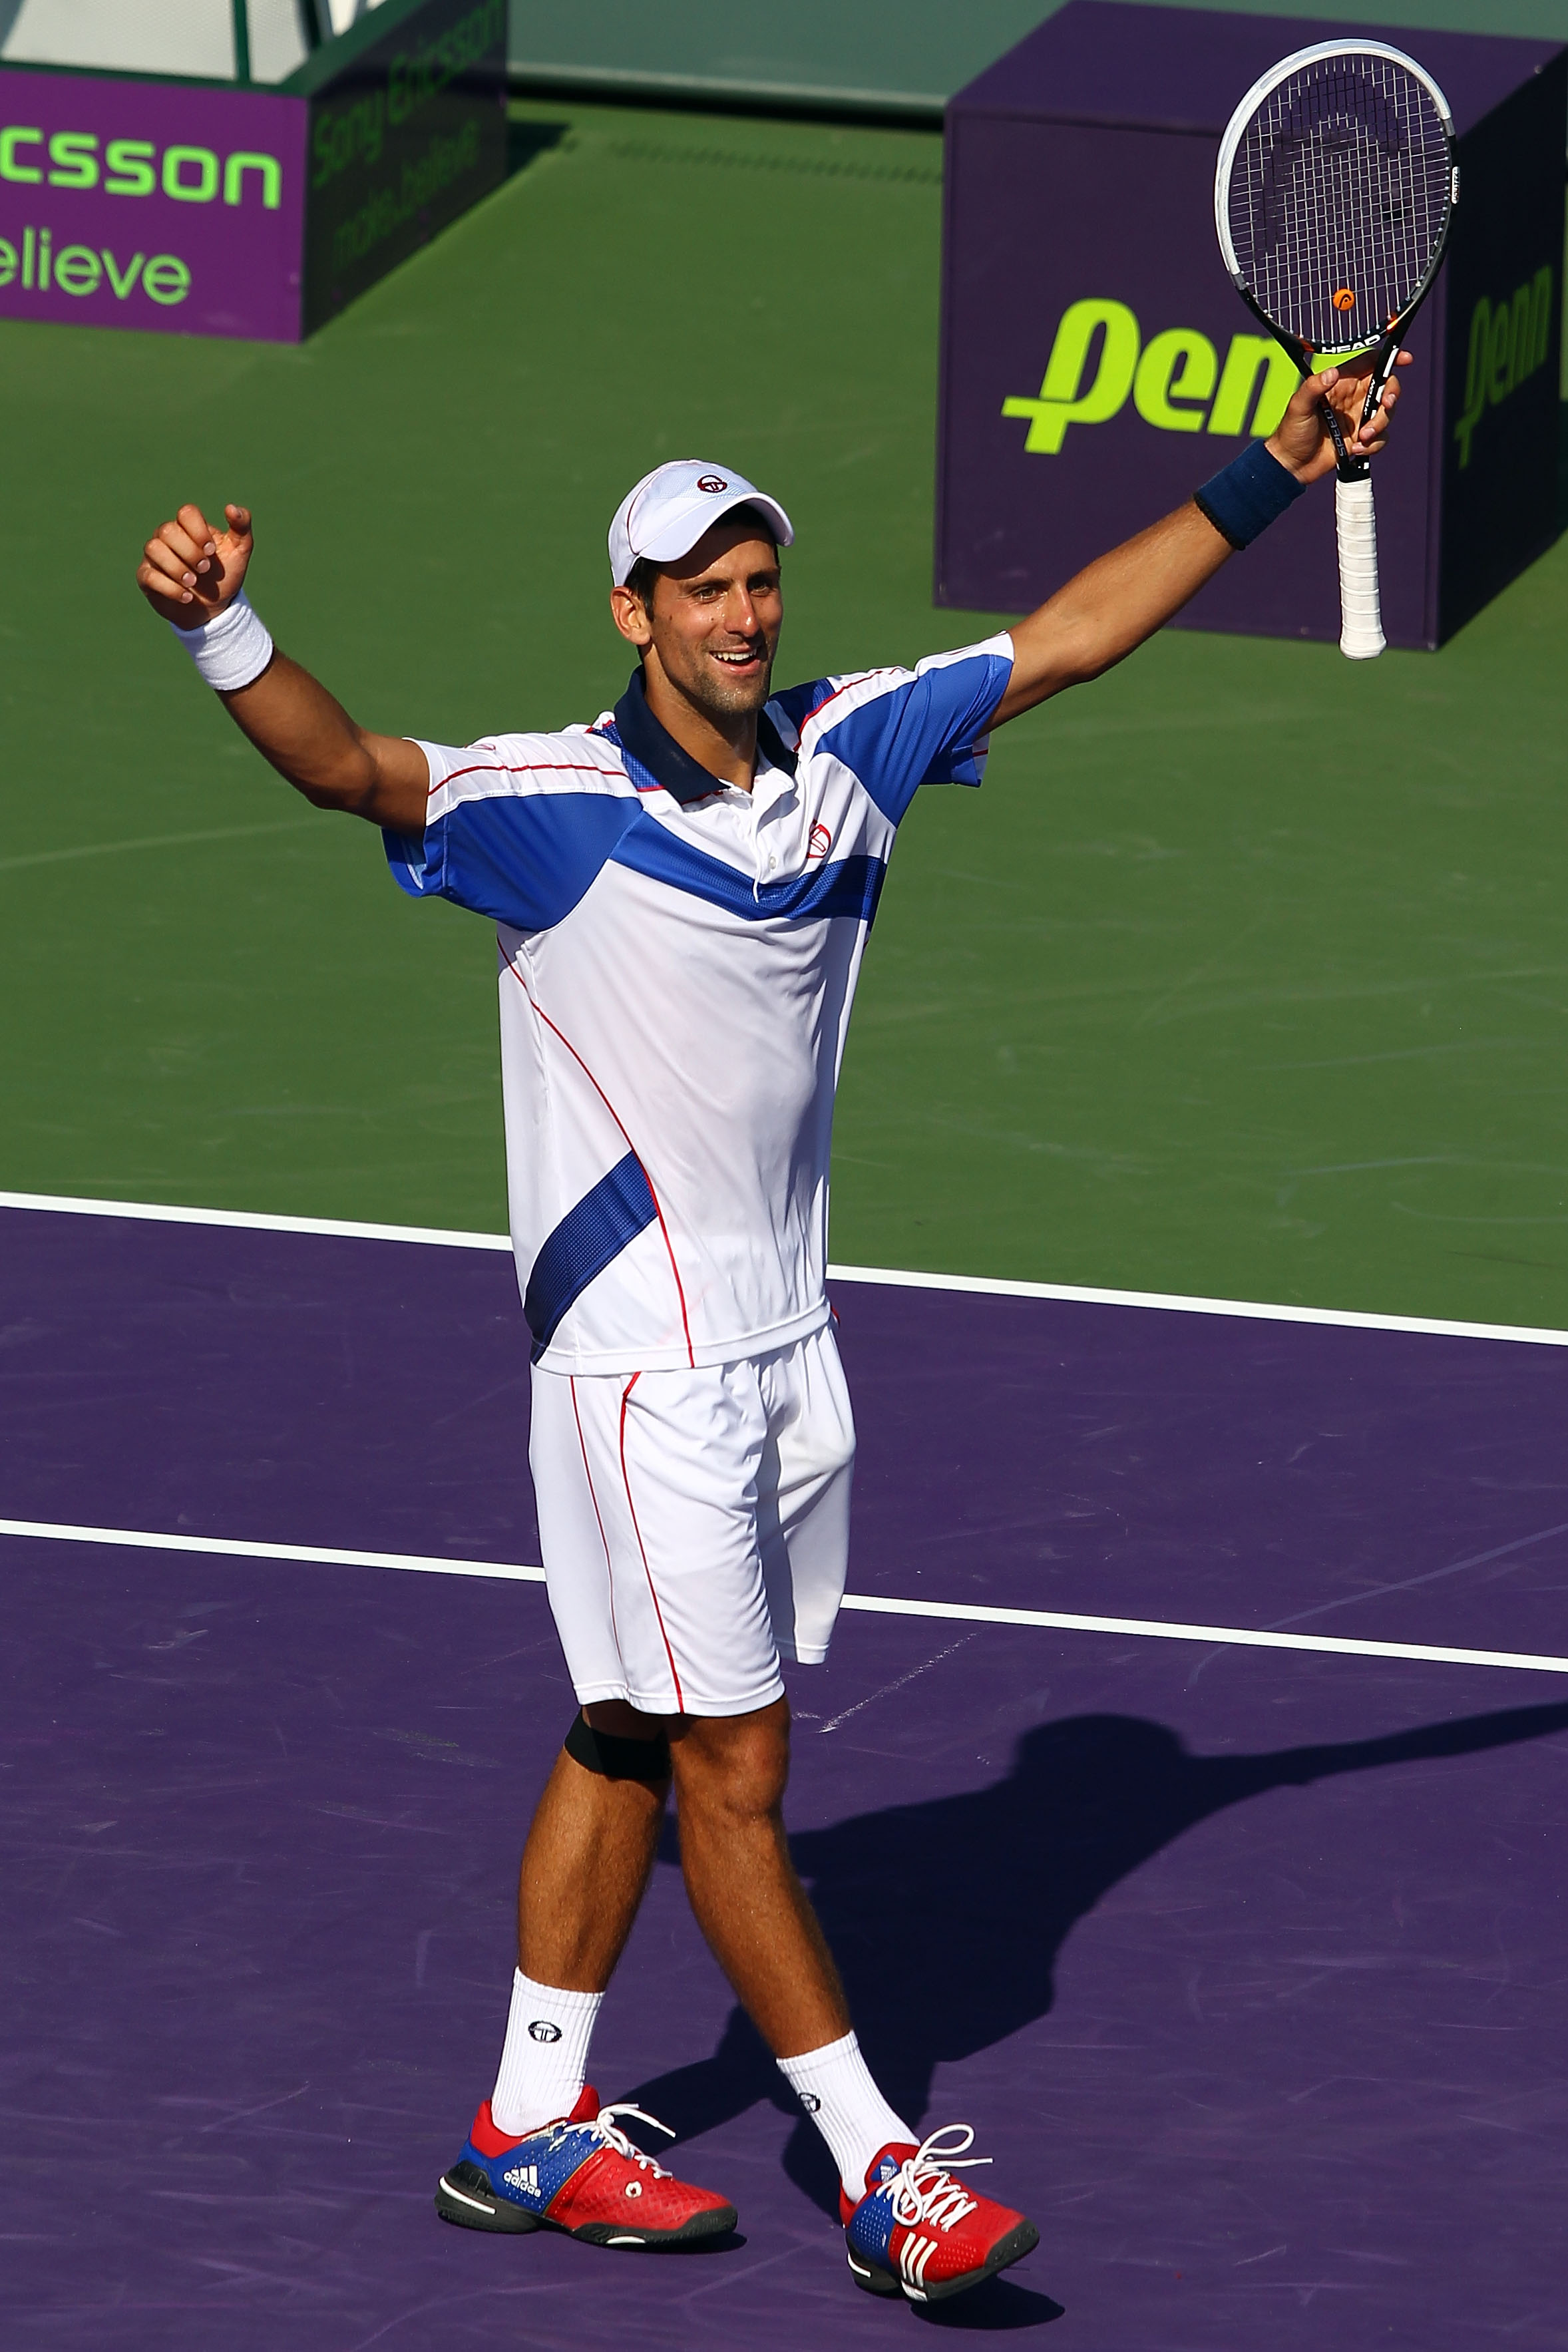 KEY BISCAYNE, FL - APRIL 03:  Novak Djokovic of Serbia celebrates after he won match point against Rafael Nadal of Spain during the men's singles championship at the Sony Ericsson Open at Crandon Park Tennis Center on April 3, 2011 in Key Biscayne, Florid